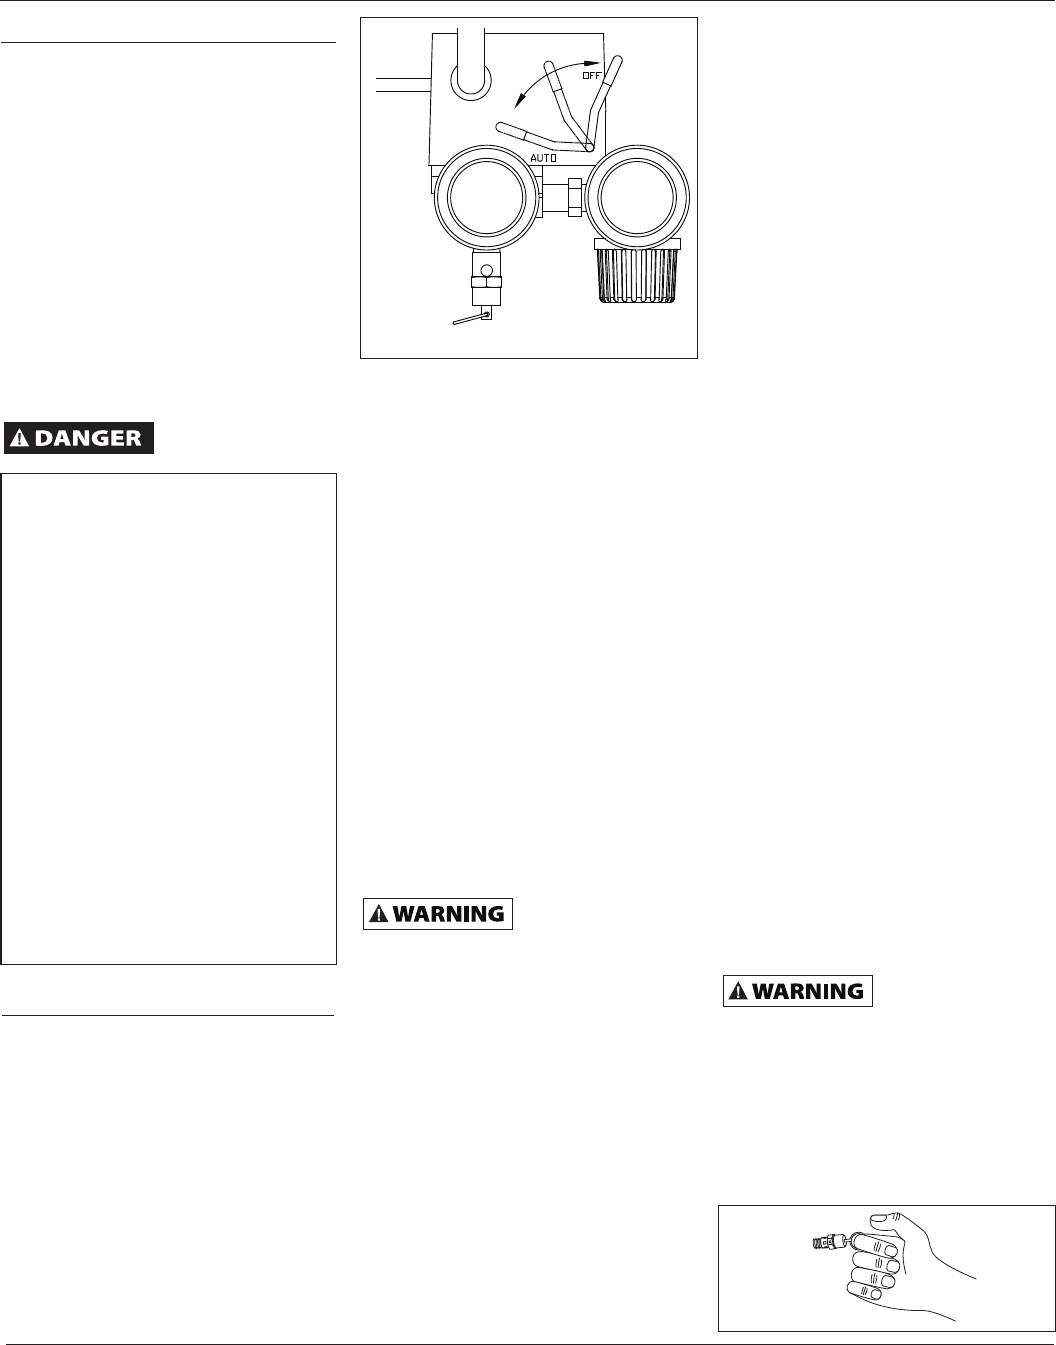 User Manual For Campbell Hausfeld Compressor